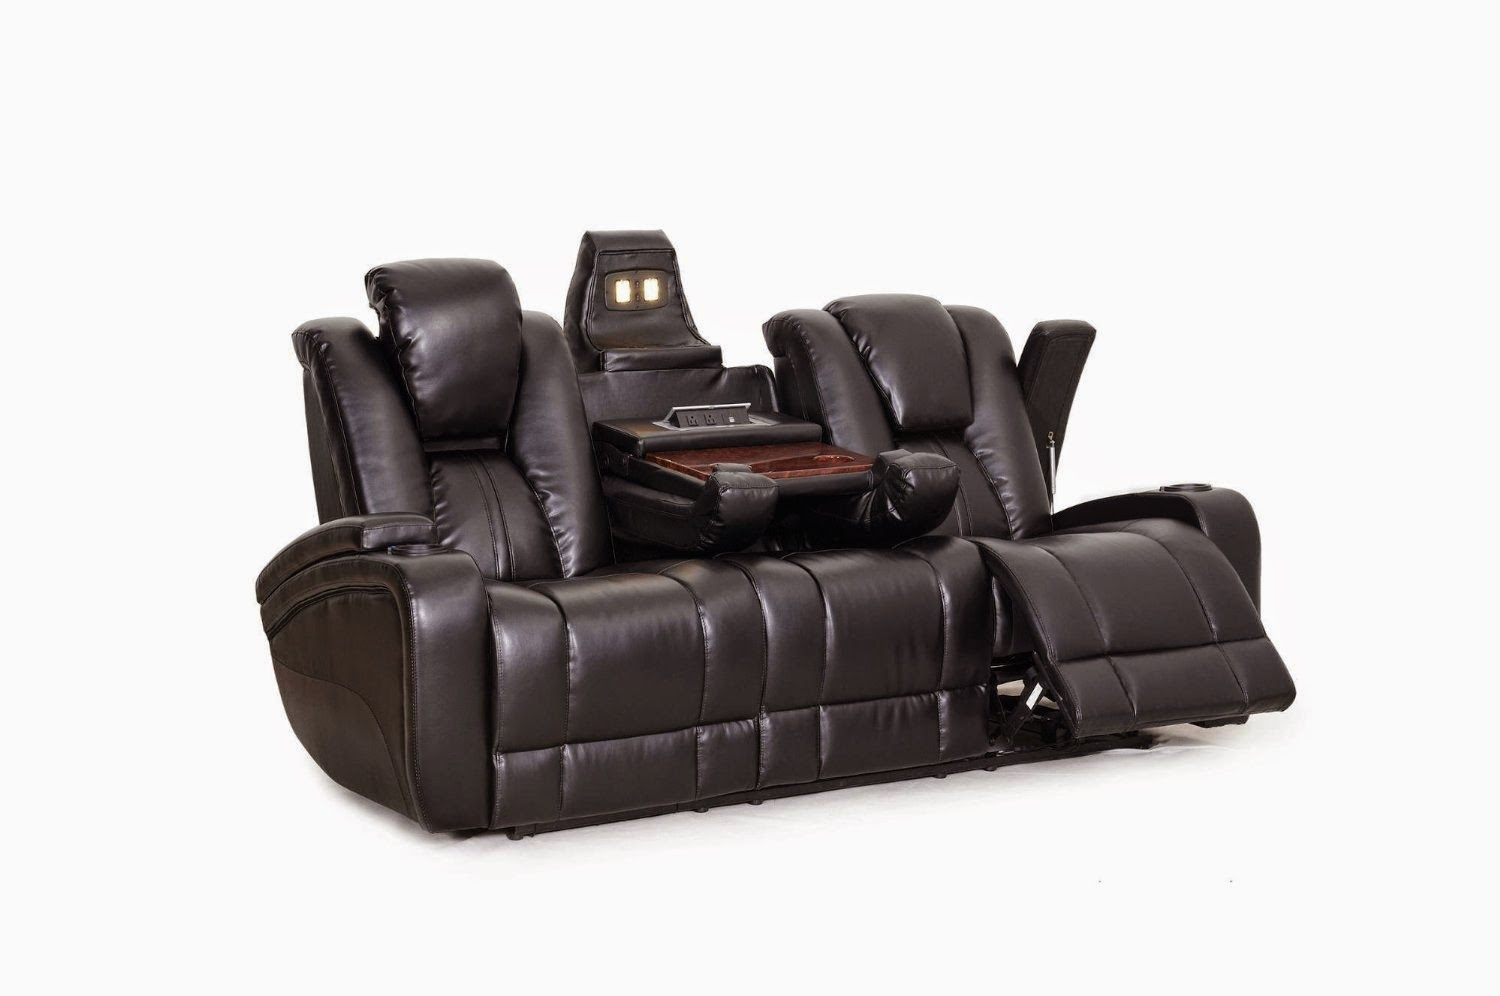 Top seller reclining and recliner sofa loveseat reclining sofa leather power Power loveseat recliner